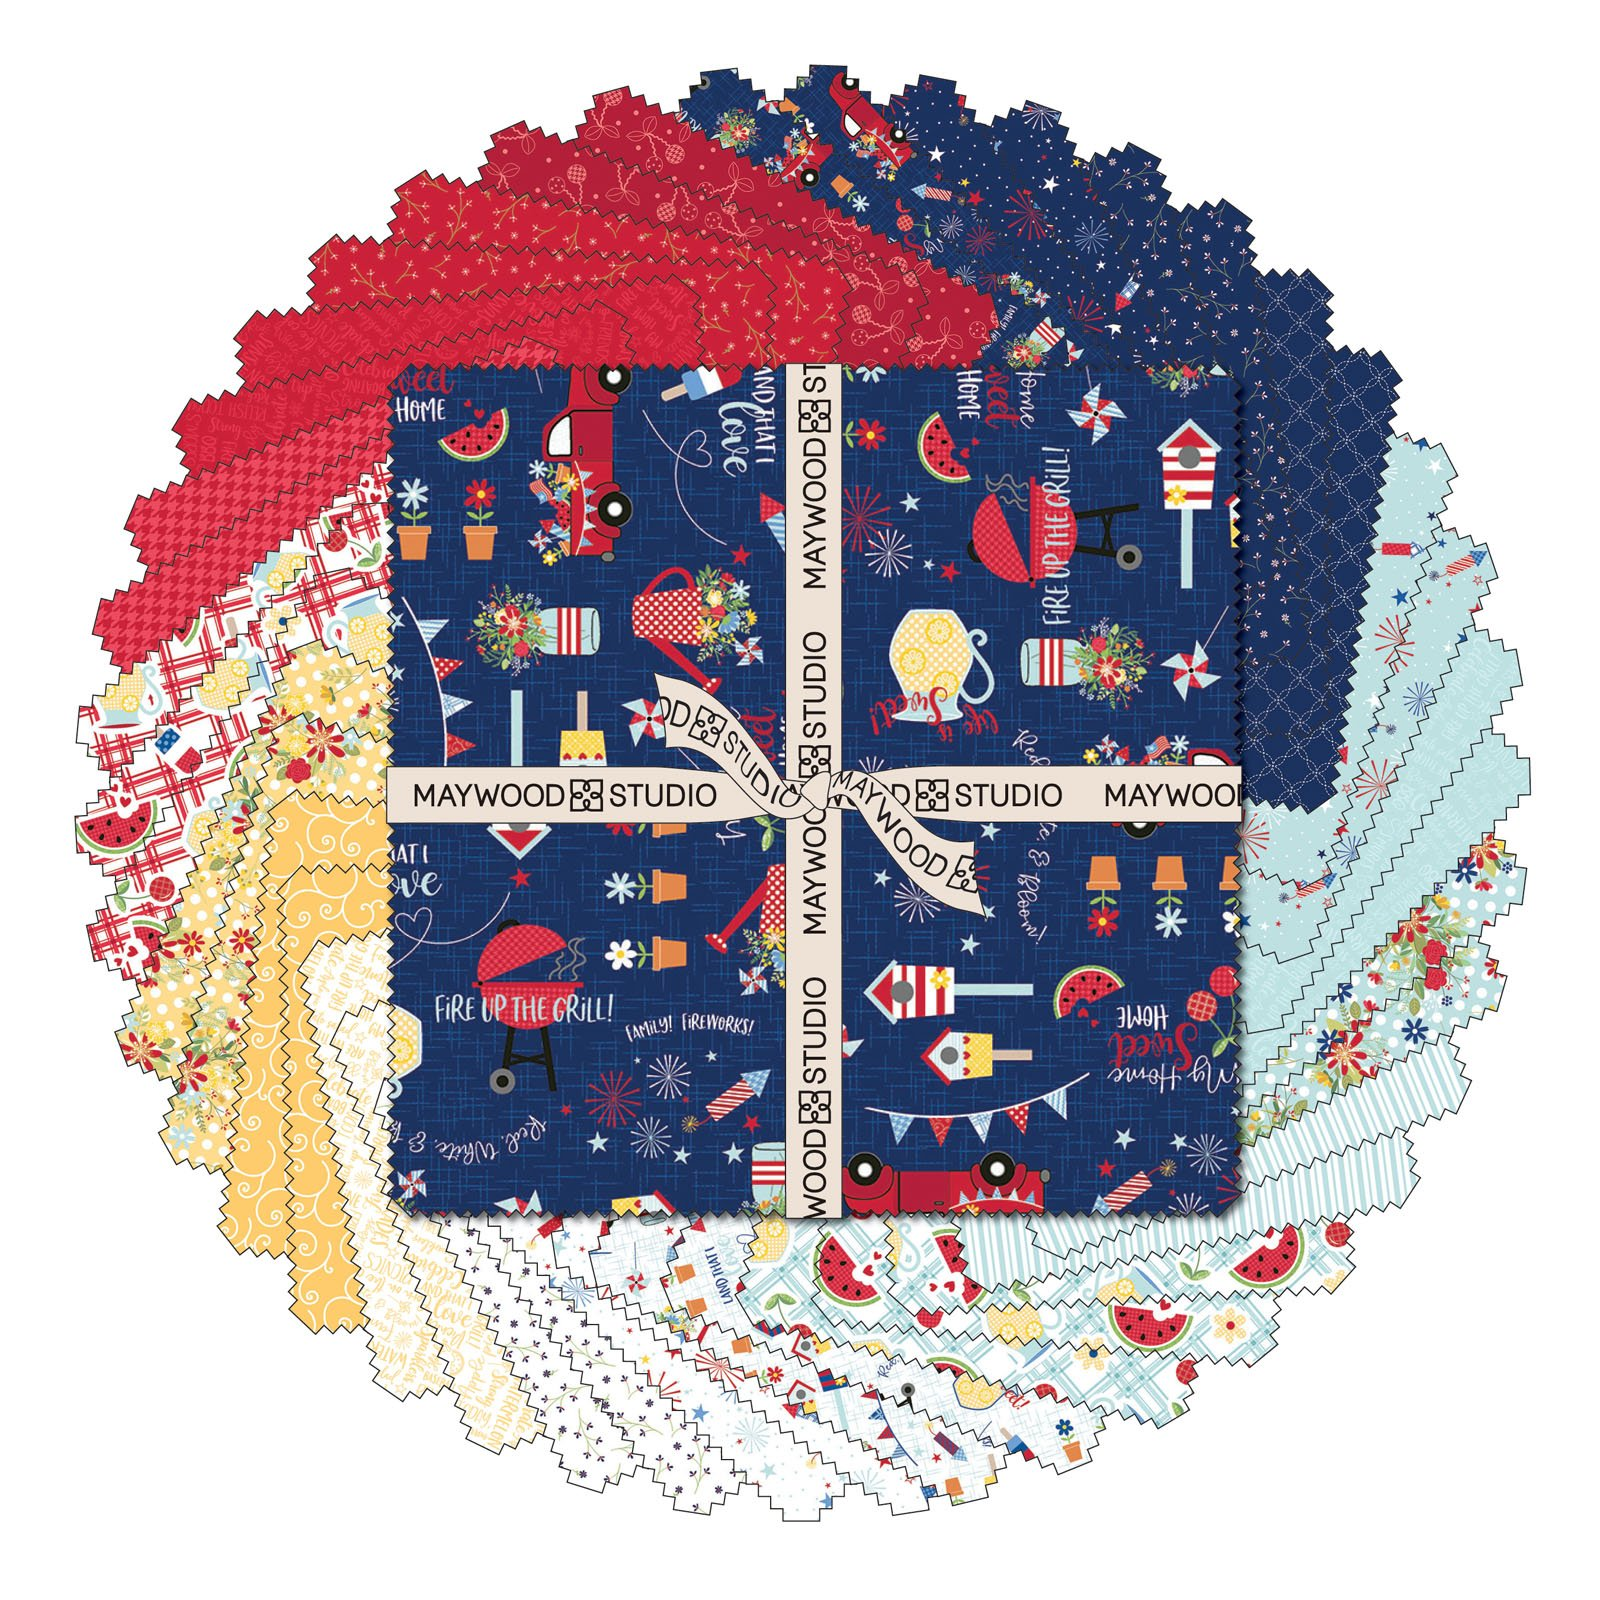 EESC-SQMASRWB - RED, WHITE & BLOOM 10 SQUARES (42PC) - ARRIVING MARCH 2021